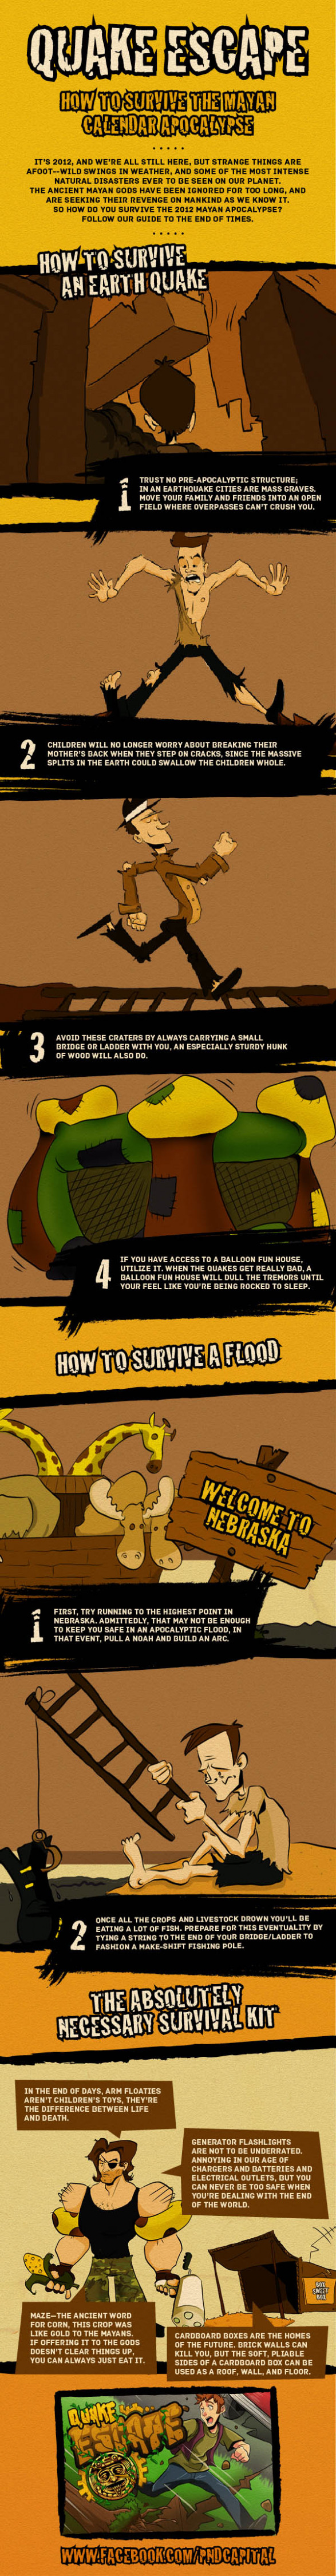 How to Survive The Mayan Calendar Apocalypse